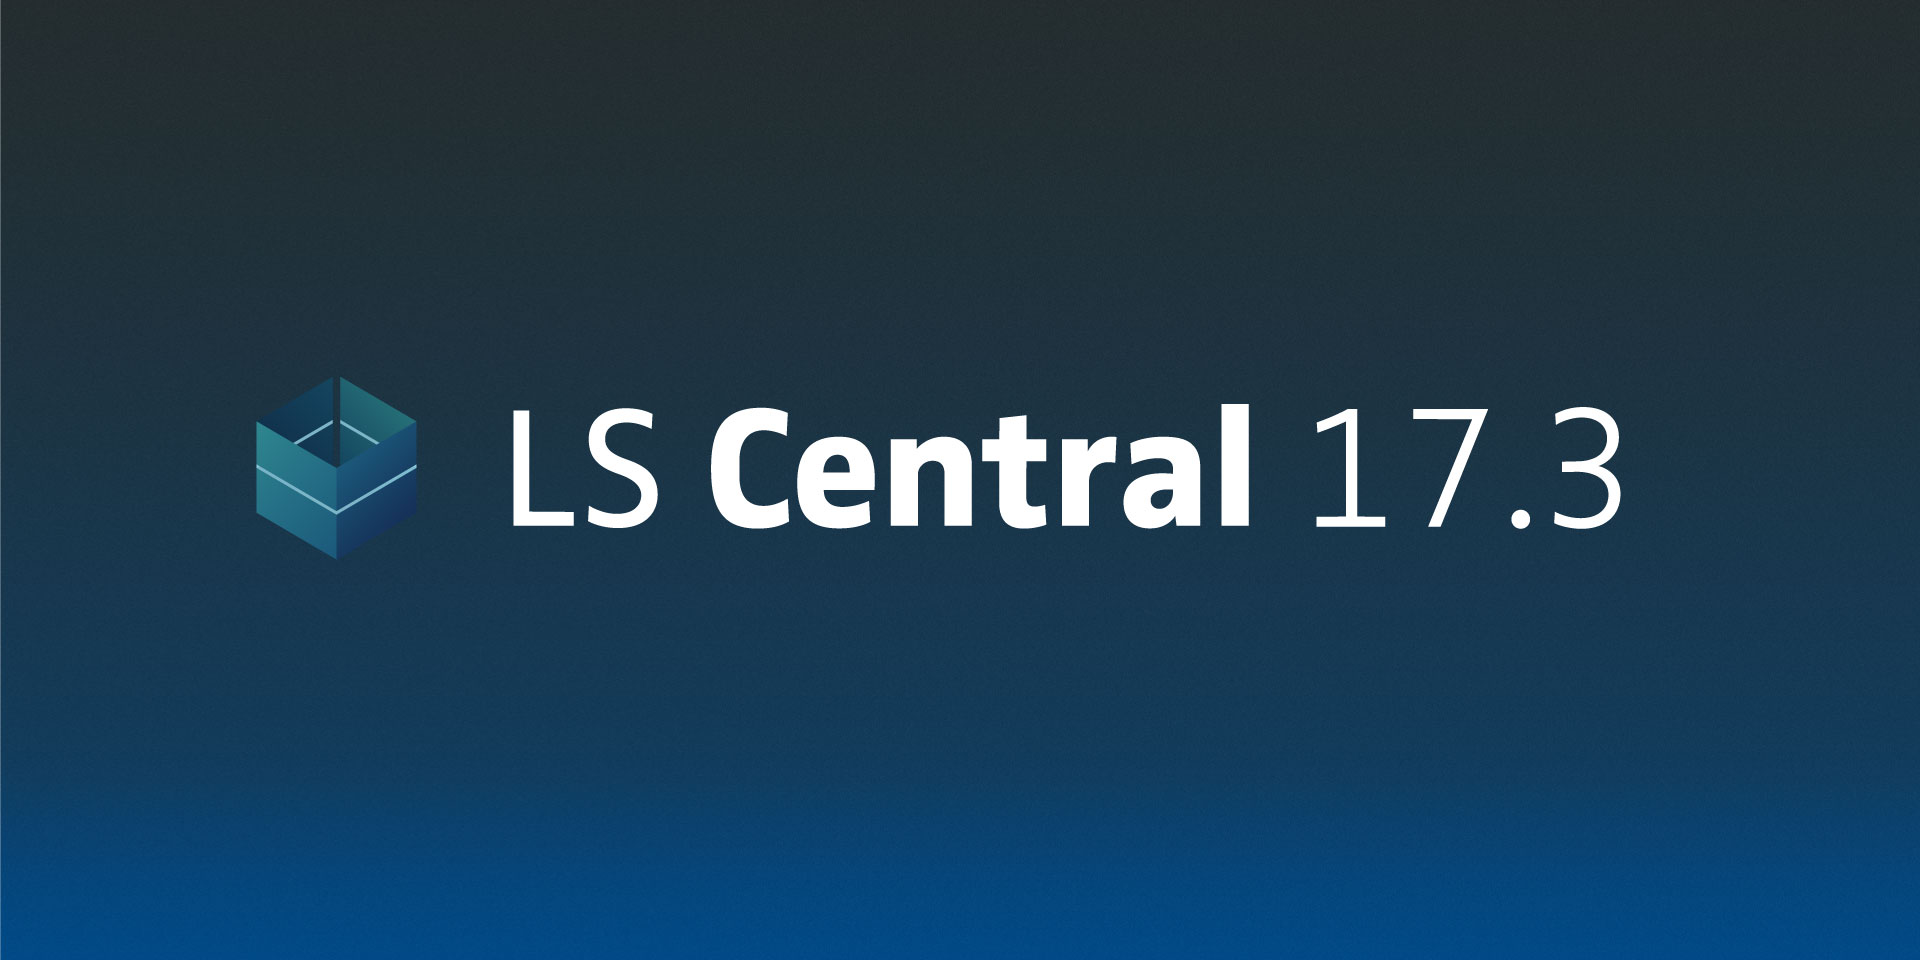 LS Central 17.3: faster POS login, easier recall of items on the KDS, enhancements to LS Activity